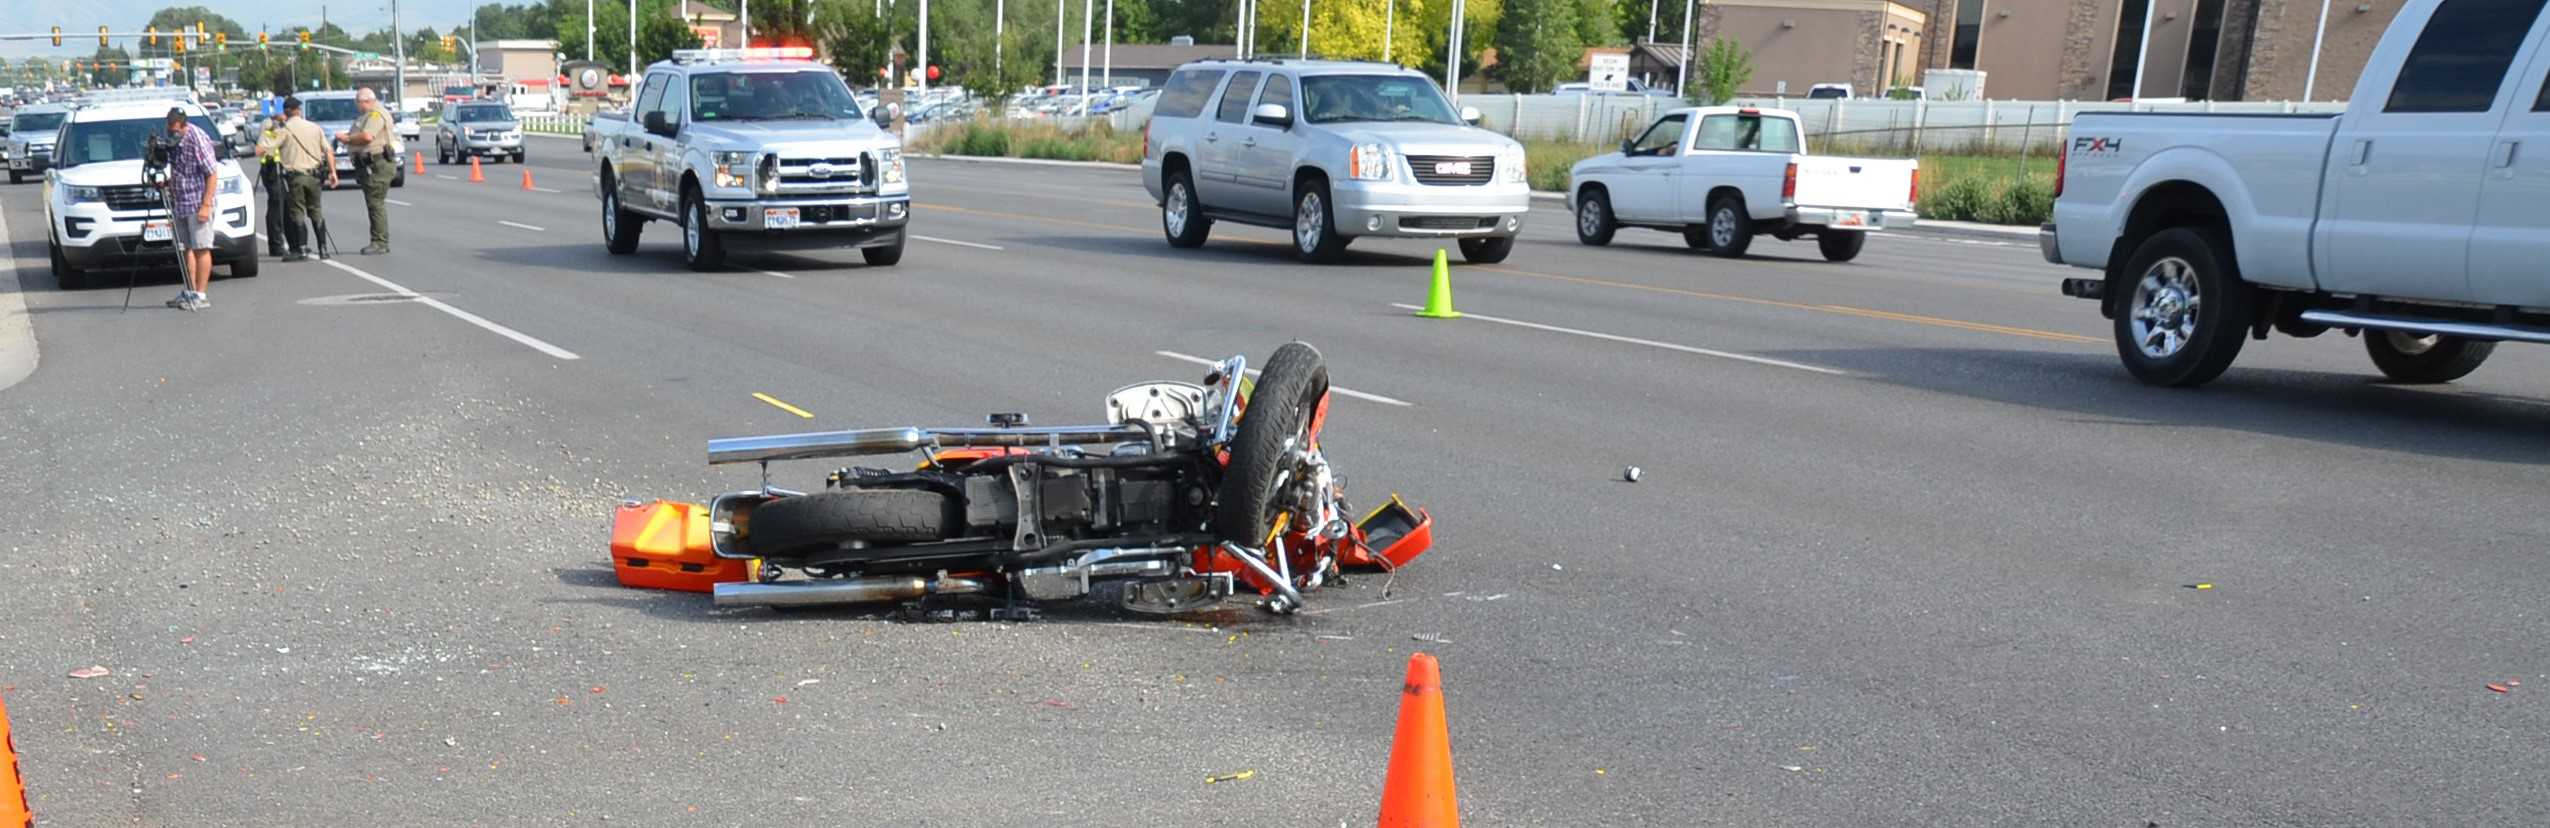 Man dies in Lindon motorcycle crash (Photo: Lindon Police)